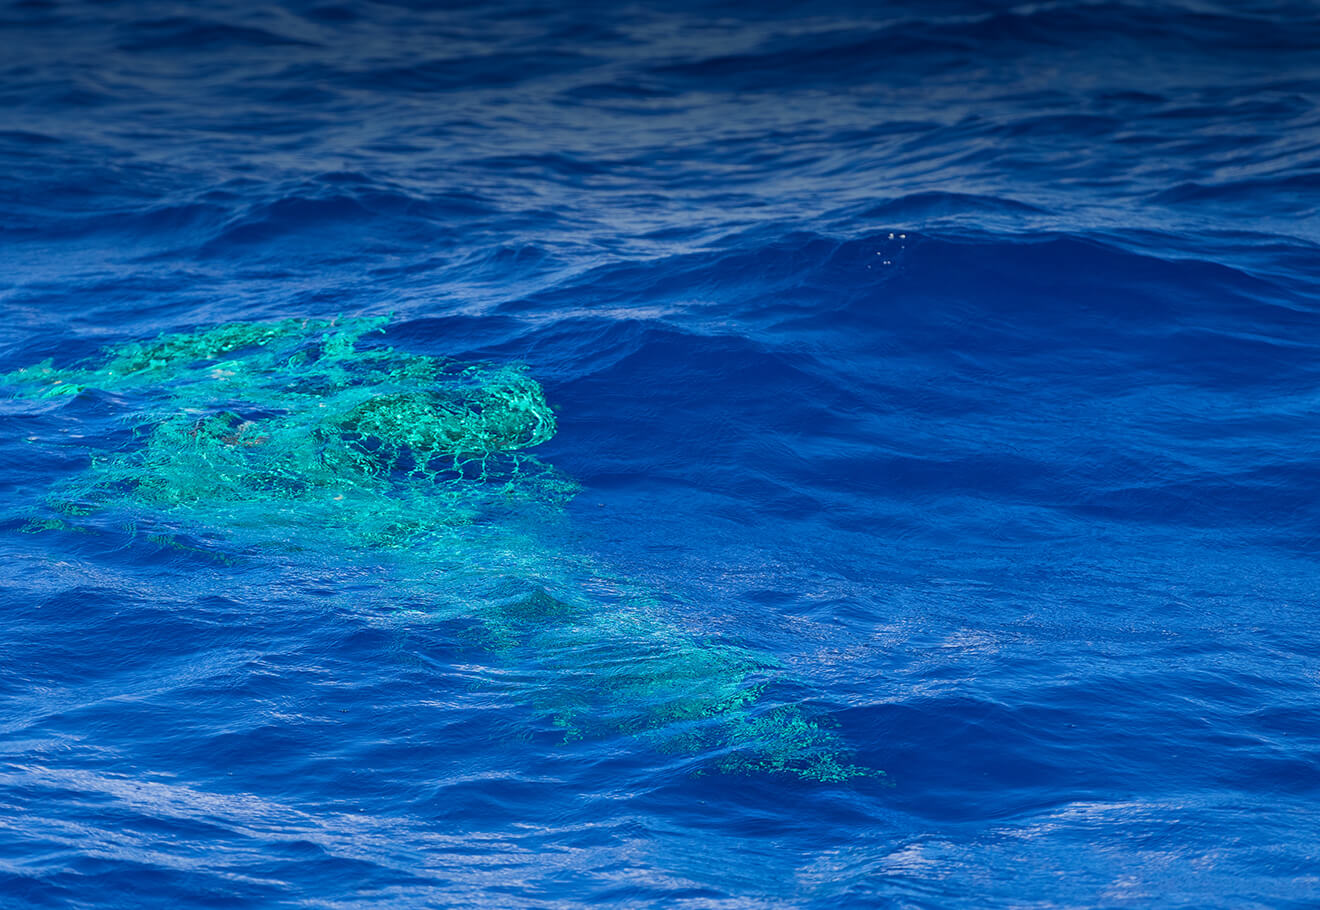 Fishing net in the middle of the ocean